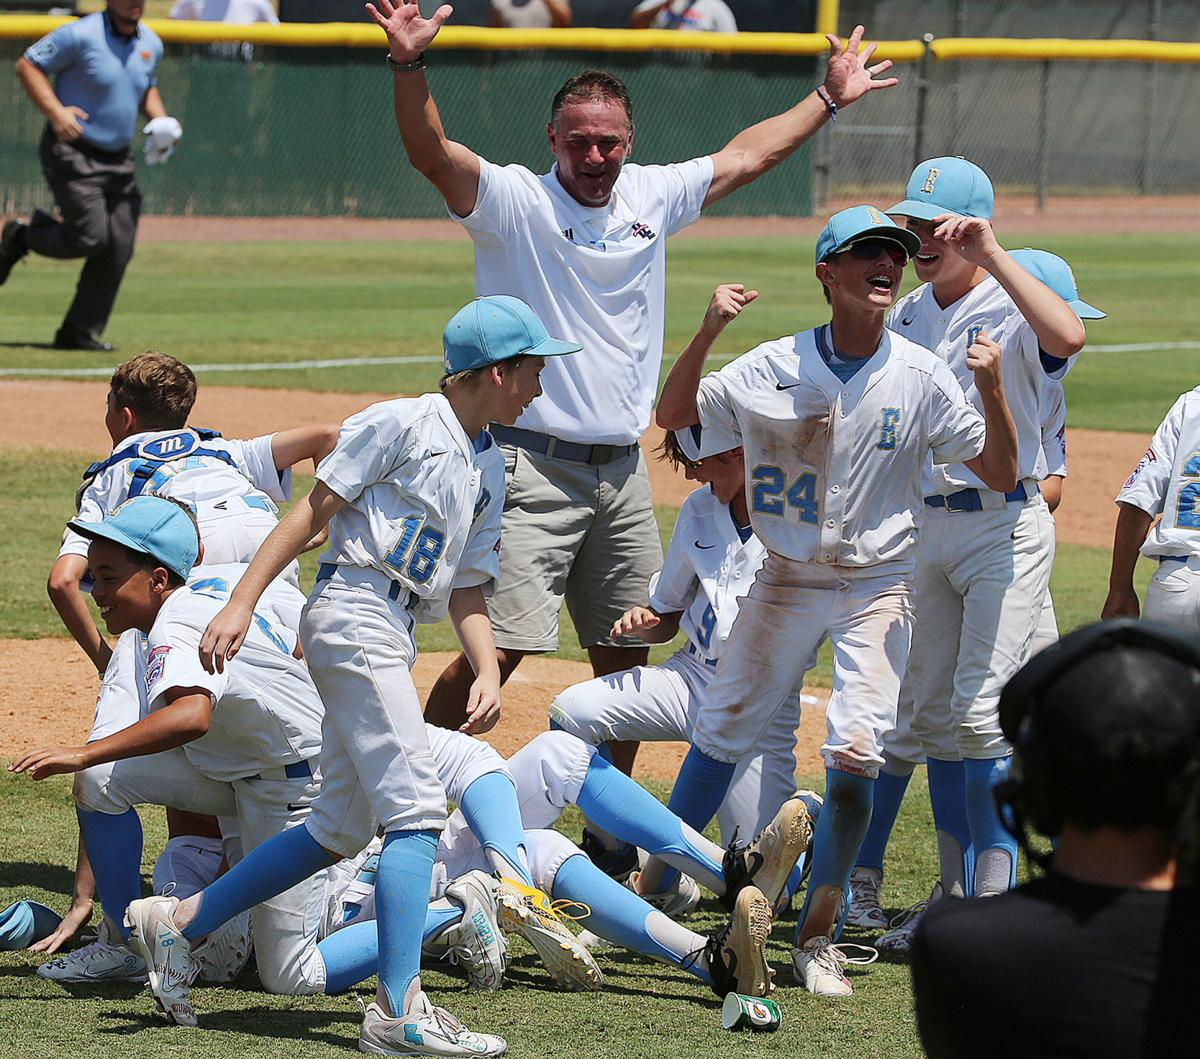 Louisiana downs Texas West, earns spot in Little League World Series